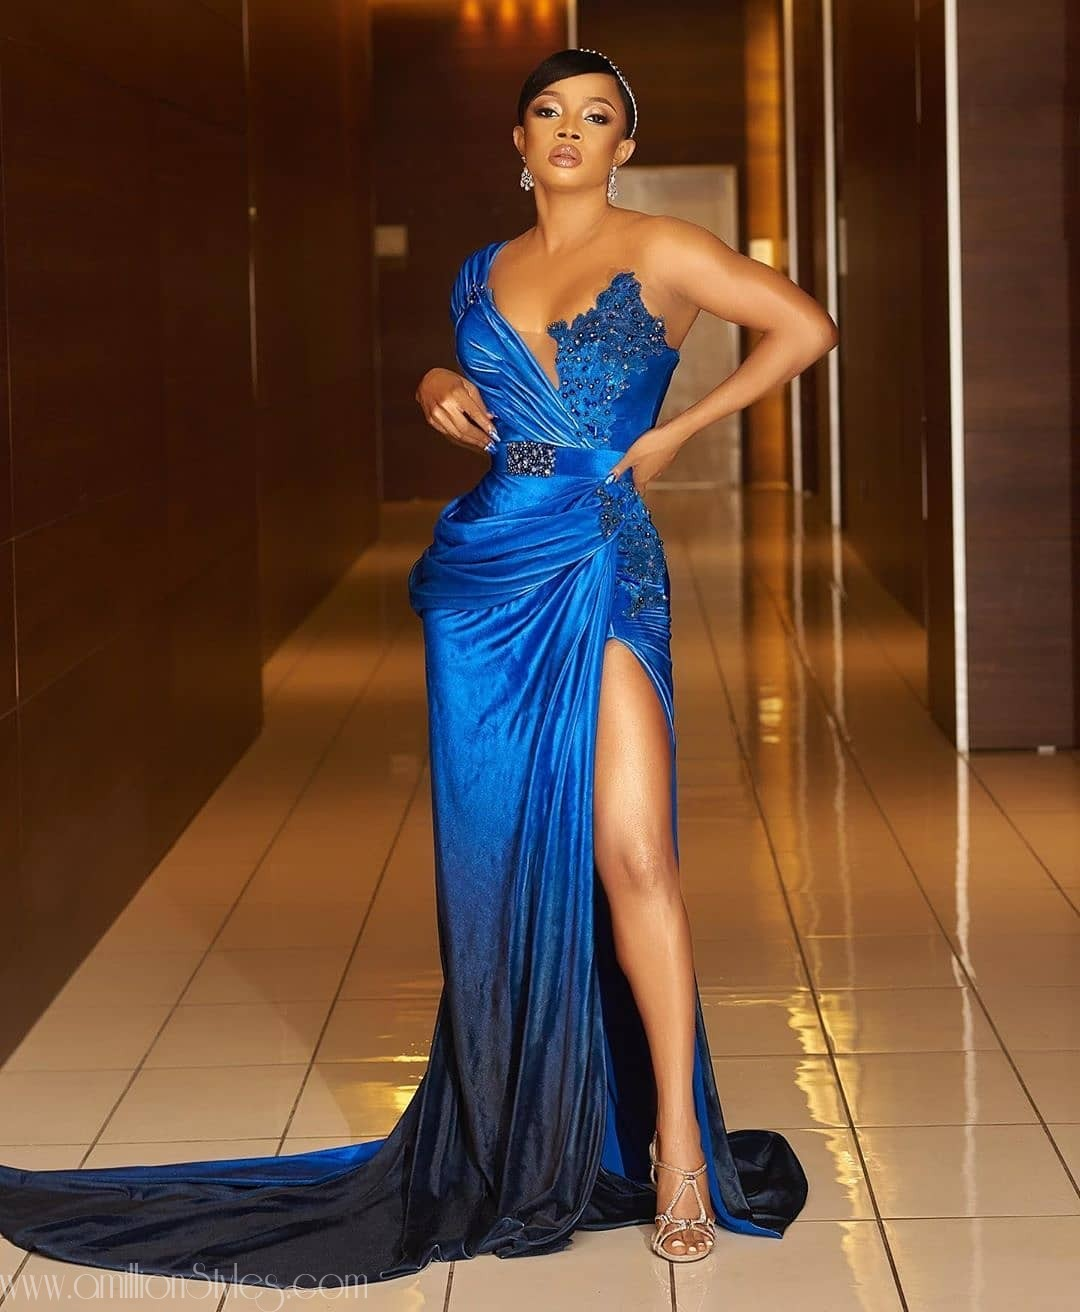 Stunning Women's Outfits From The 2020 AMVCA